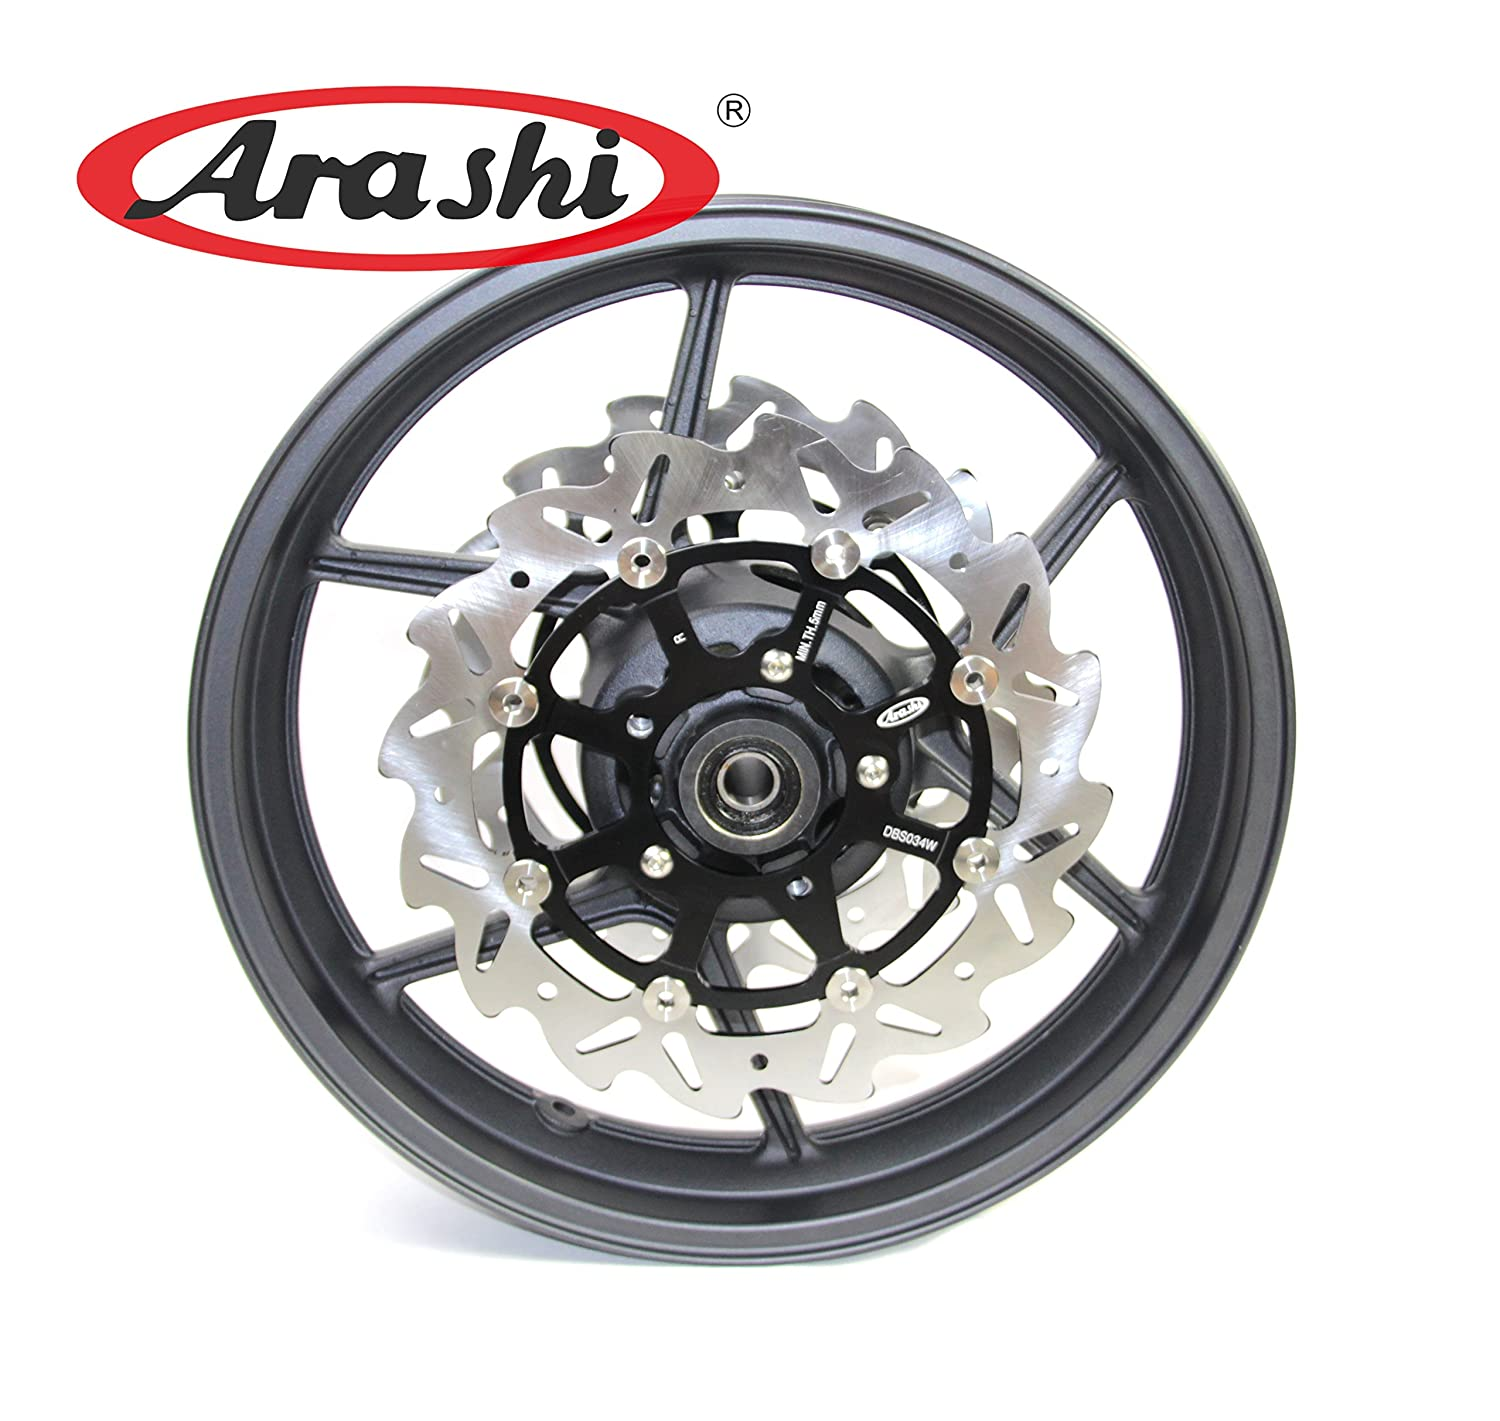 Amazon.com: Arashi Front Wheel Rim Brake Rotors for Kawasaki ...